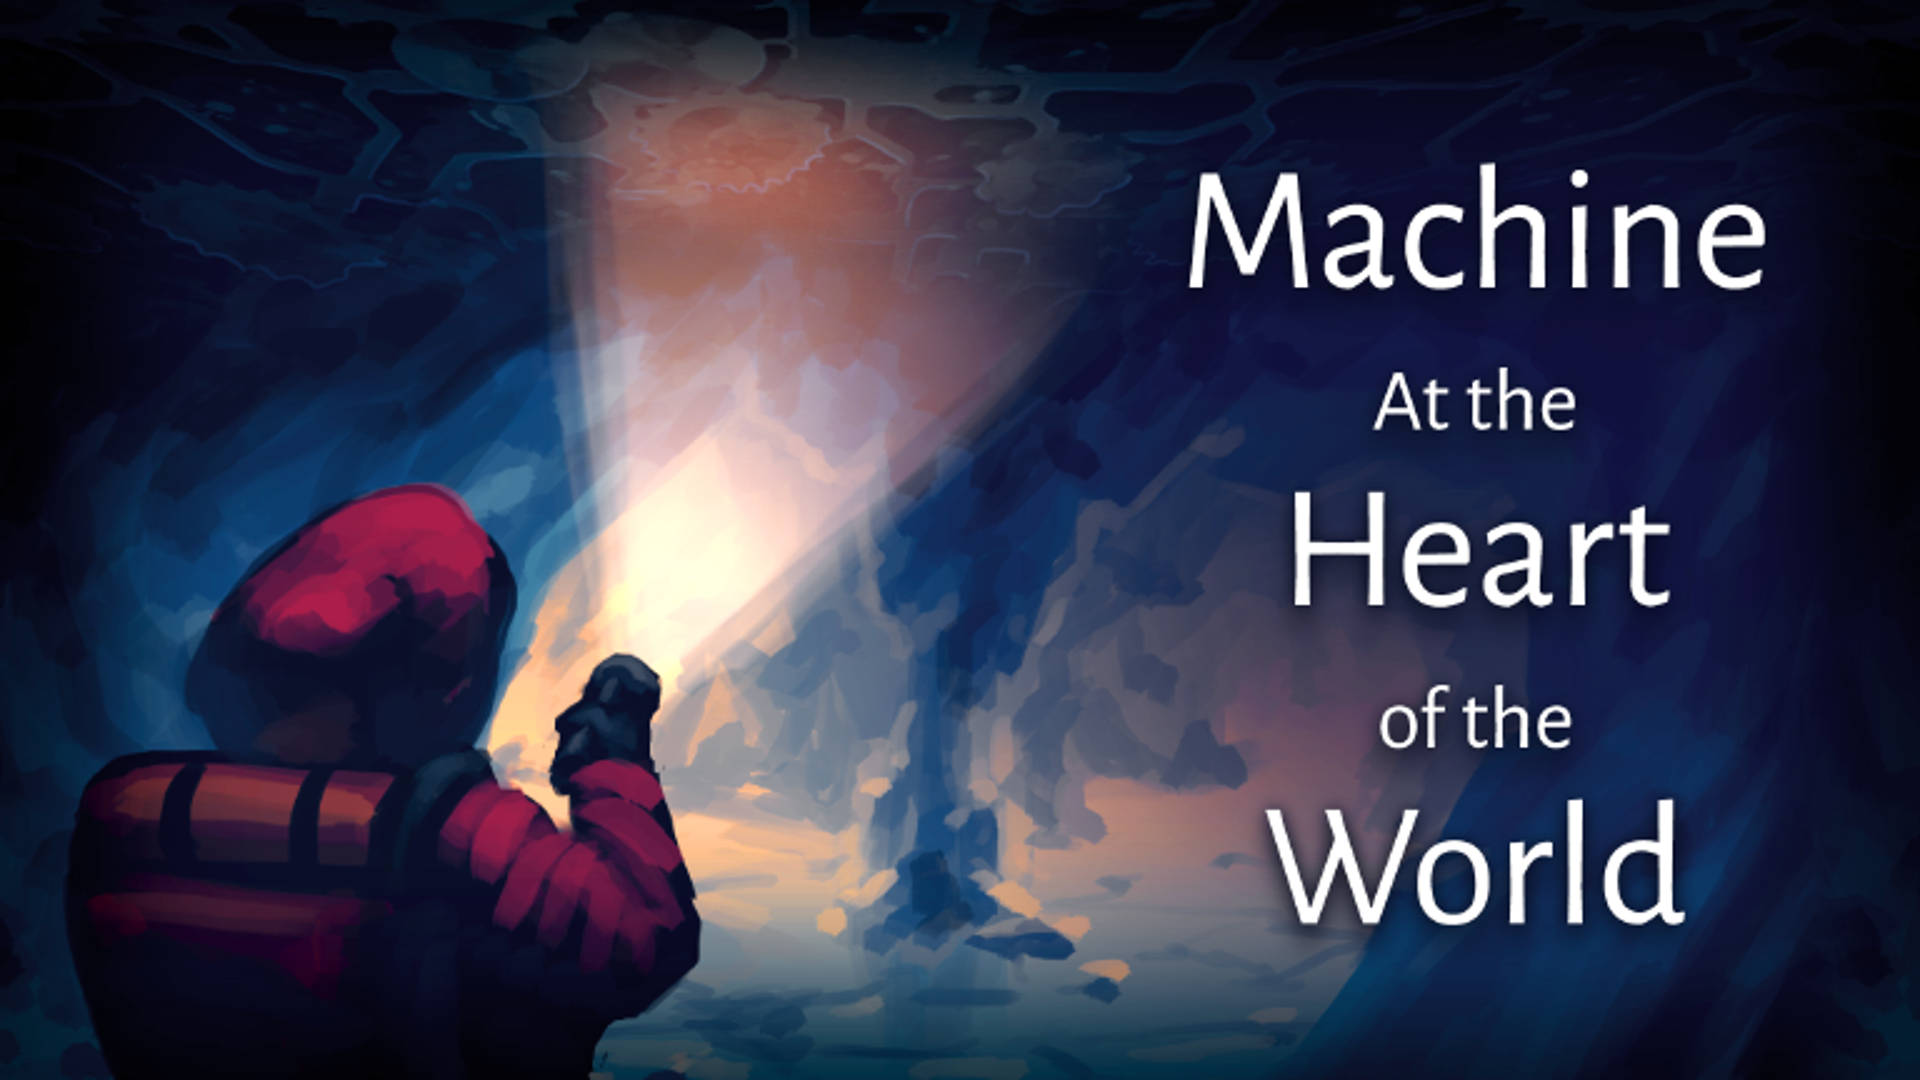 Machine at the Heart of the World image